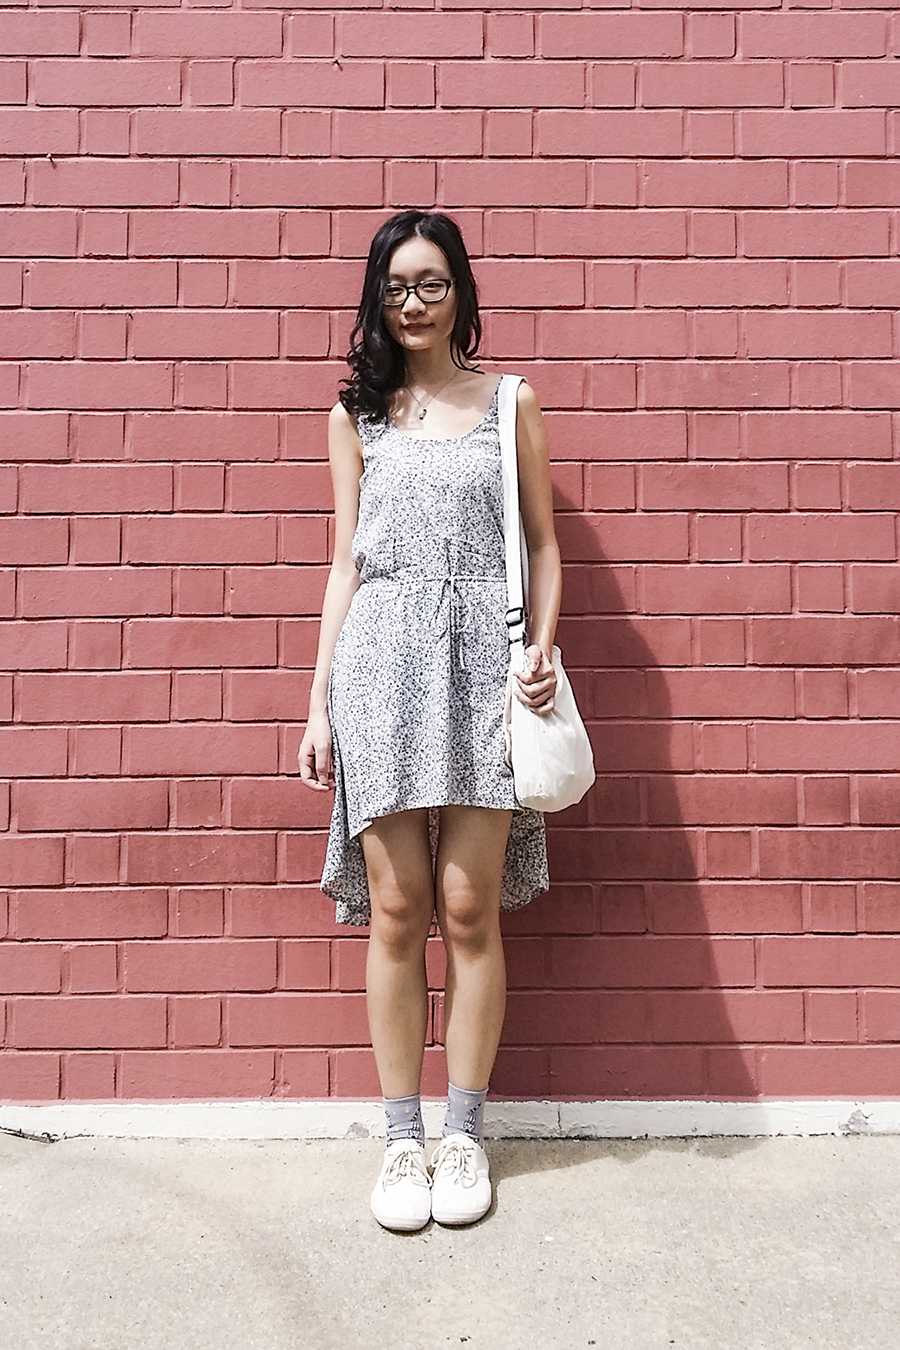 Gap black frame glasses, Modcloth bicycle print high low dress, canvas sling bag, Taobao grey spacemen in space socks, Cotton On tan lace-ups.